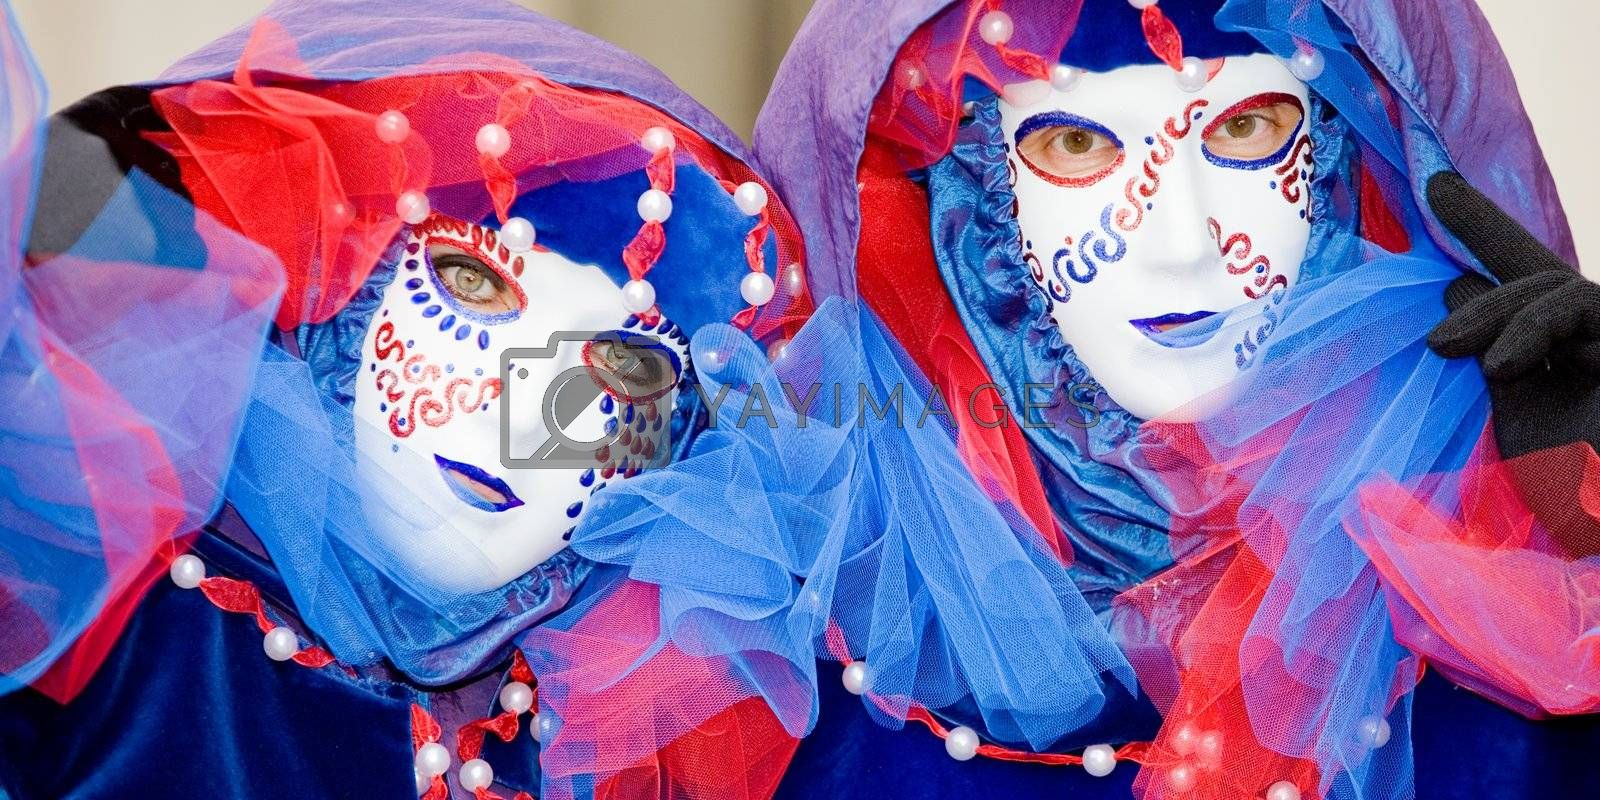 Two people in masks at the Venice Carnival